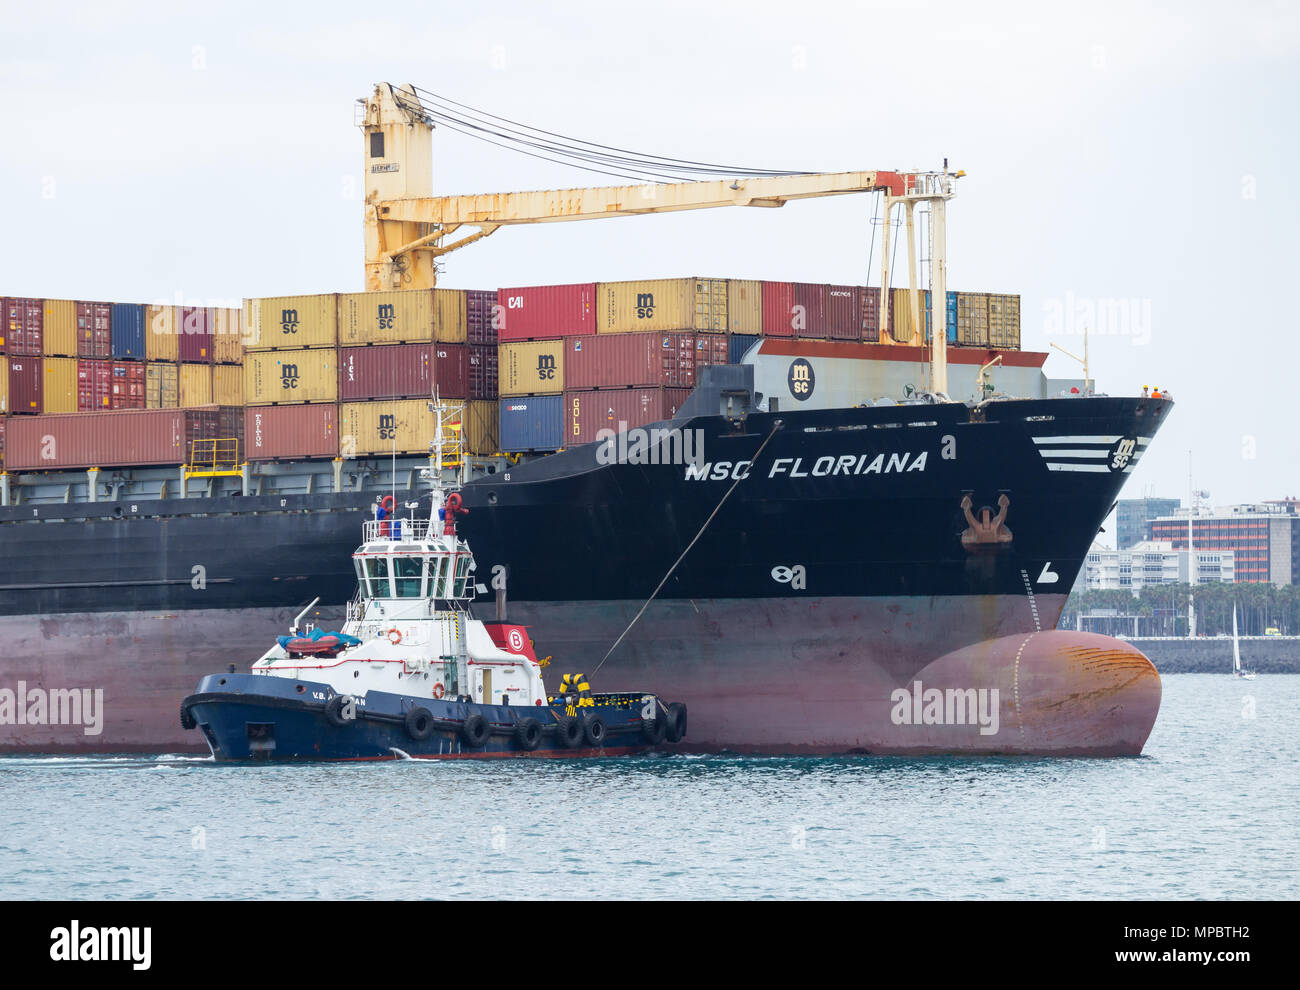 Tug boats guiding MSC Floriana container ship into port in Las Palmas on Gran Canaria, Canary Islands, Spain - Stock Image